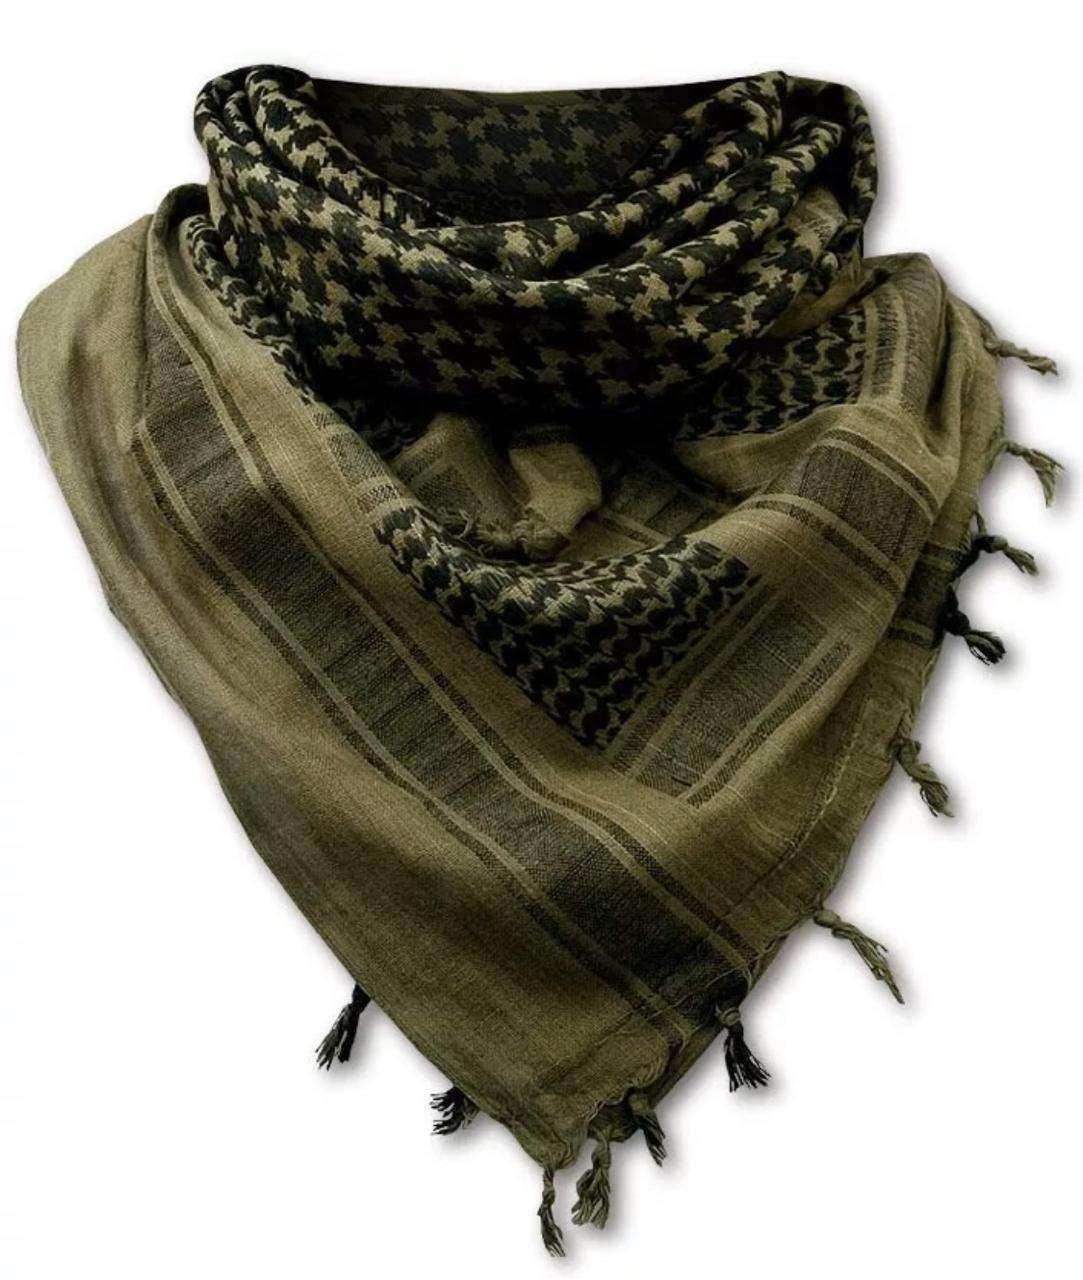 Top Quality Shemagh Scarfs/Military Shemaghs/Tactical Shemaghs